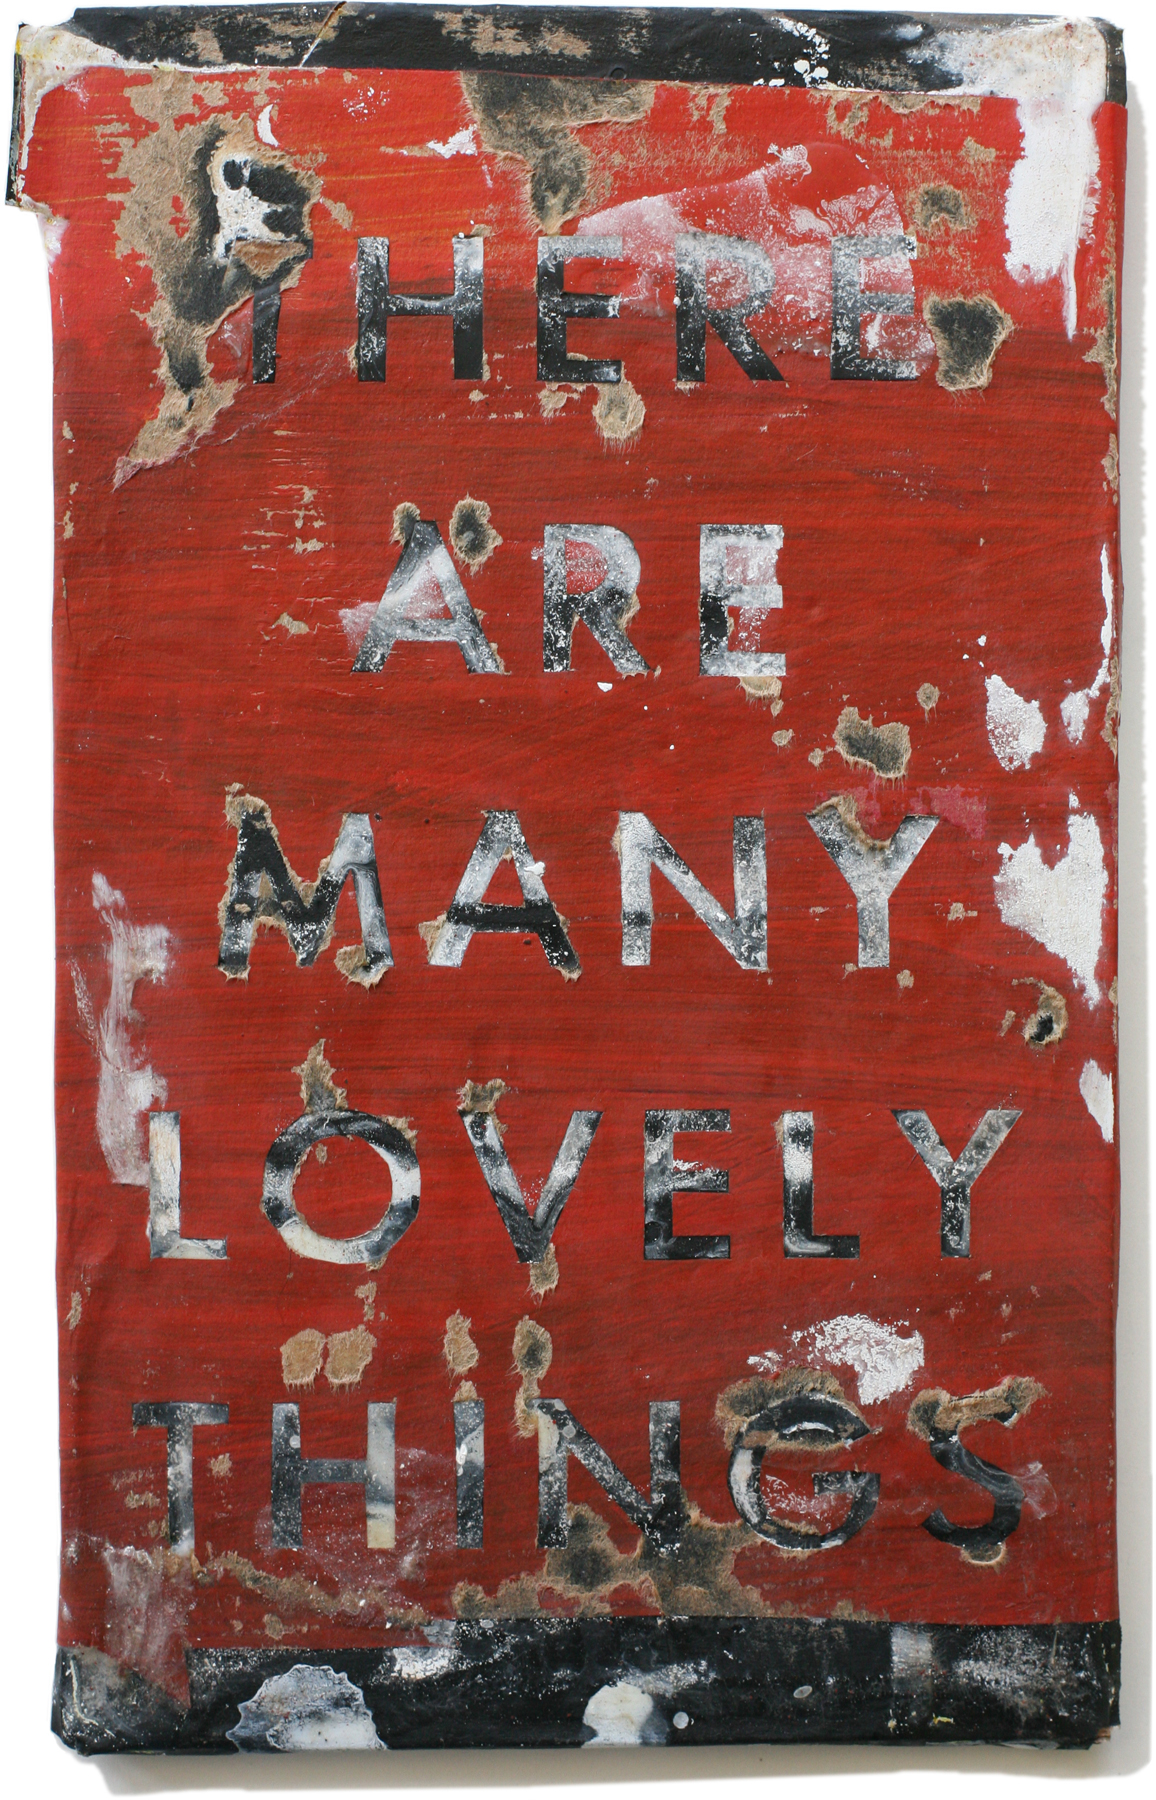 """Lovely Things 33, 10"""" x 6"""", 2008-2010 (private collection)"""